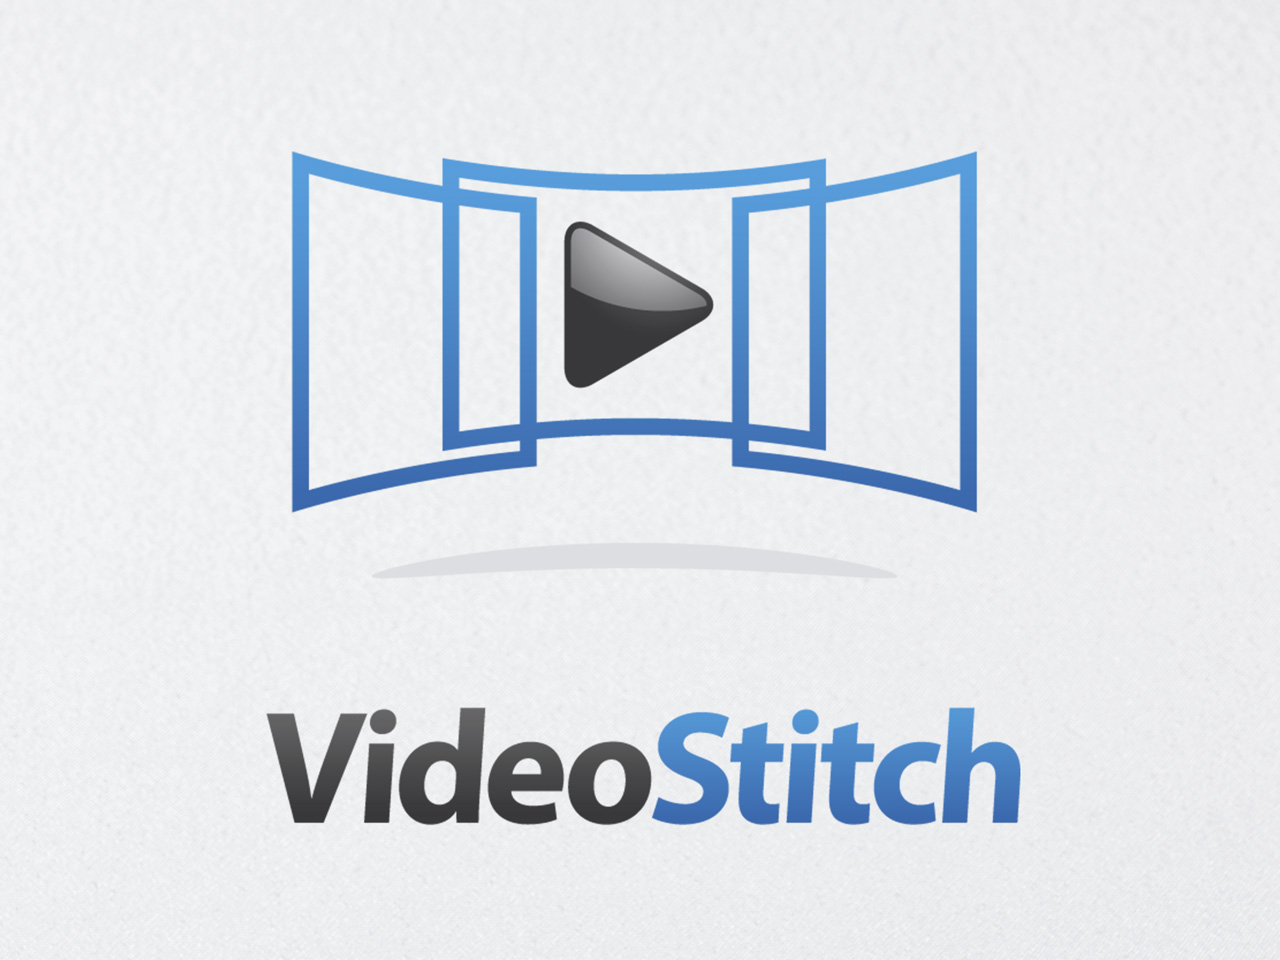 soft_videostitch